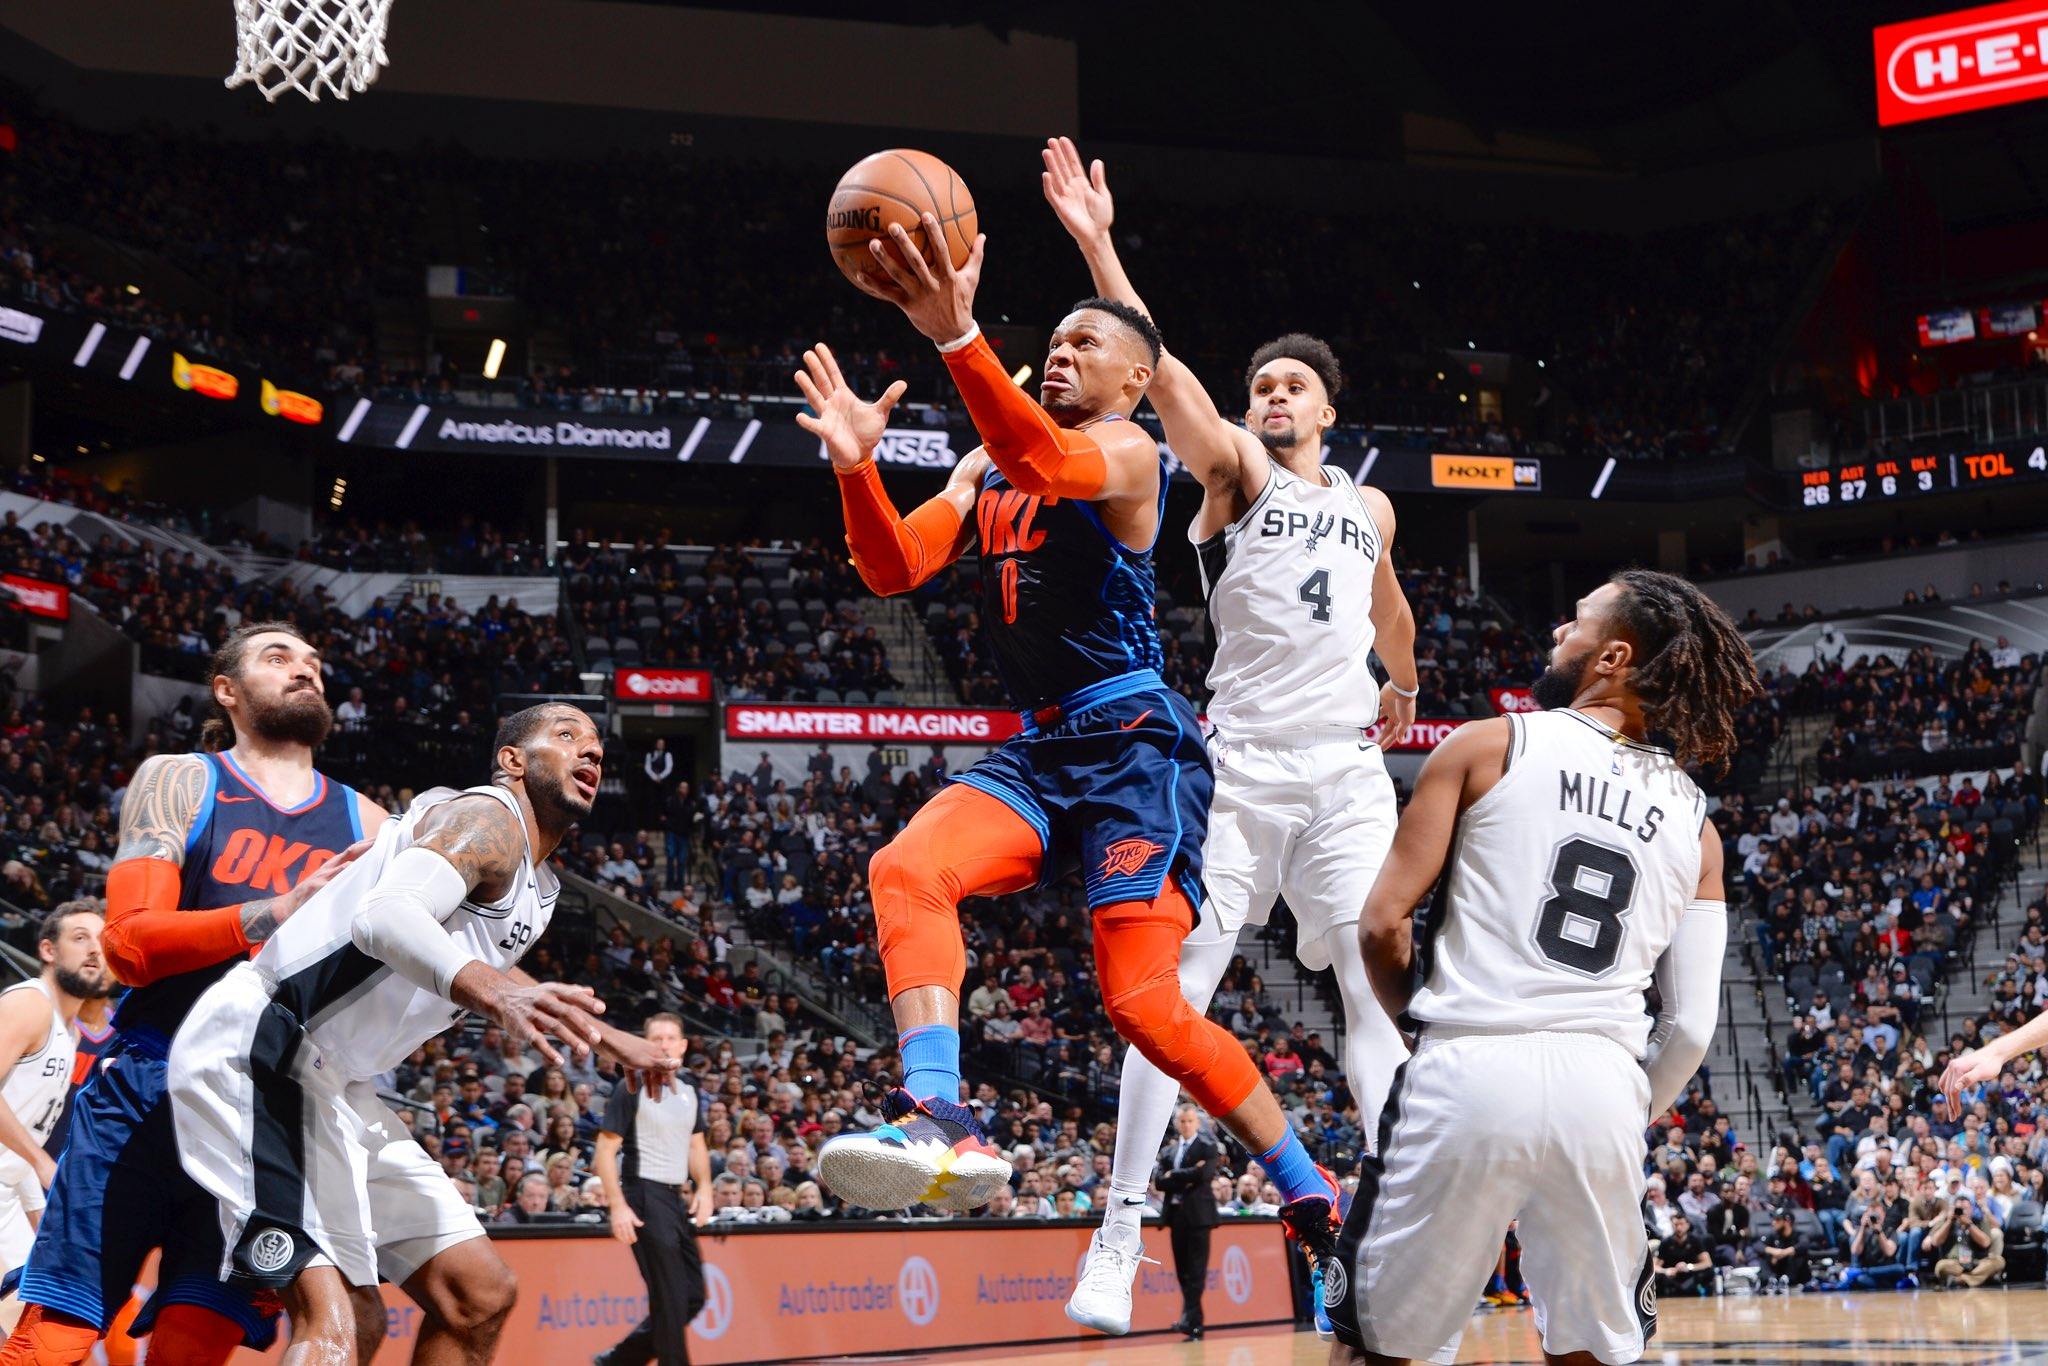 22 PTS. 9 REB. 16 AST. #TripleDoubleWatch   #ThunderUp 114 #GoSpursGo 114  5:56 remaining in @NBAonTNT https://t.co/vGUuCeJFeY